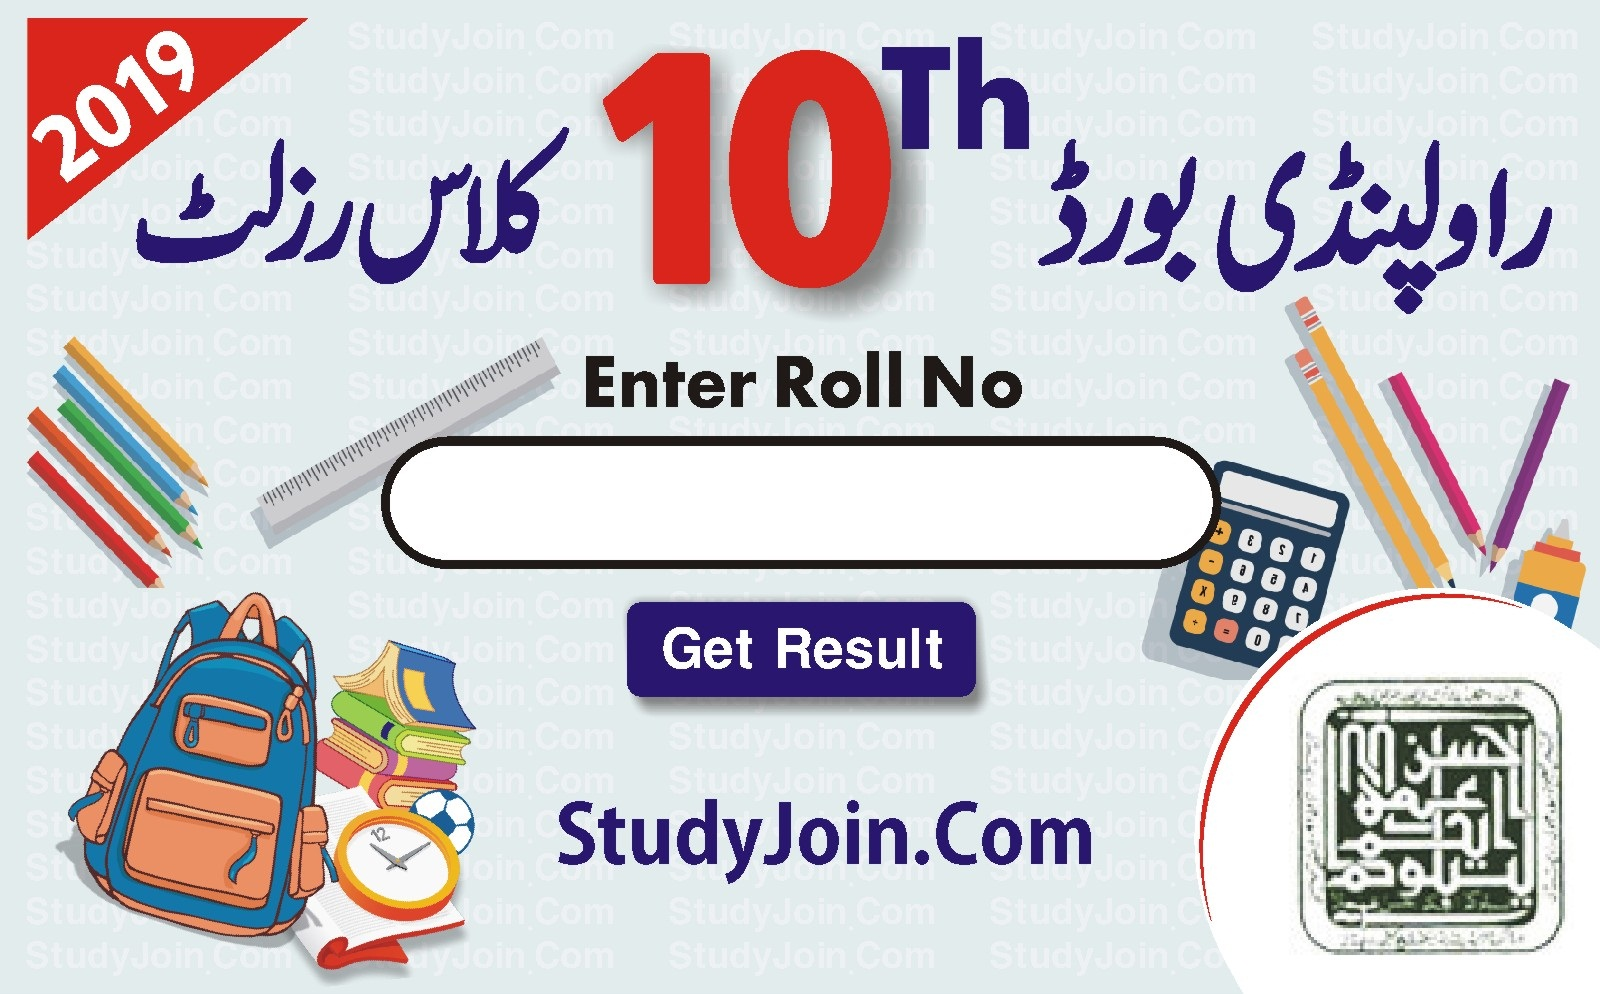 Rawalpindi board result 10th class 2019, 10th class result 2019 Rawalpindi board, Rawalpindi board result 10th class 2019 search by roll number, Rawalpindi board matric result 2019, 10 class result 2019 Rawalpindi board, Rawalpindi board matric result 2019, 10 class result date 2019 Rawalpindi board, bise Rawalpindi matric result 2019, Rawalpindi board result 2019 9th class